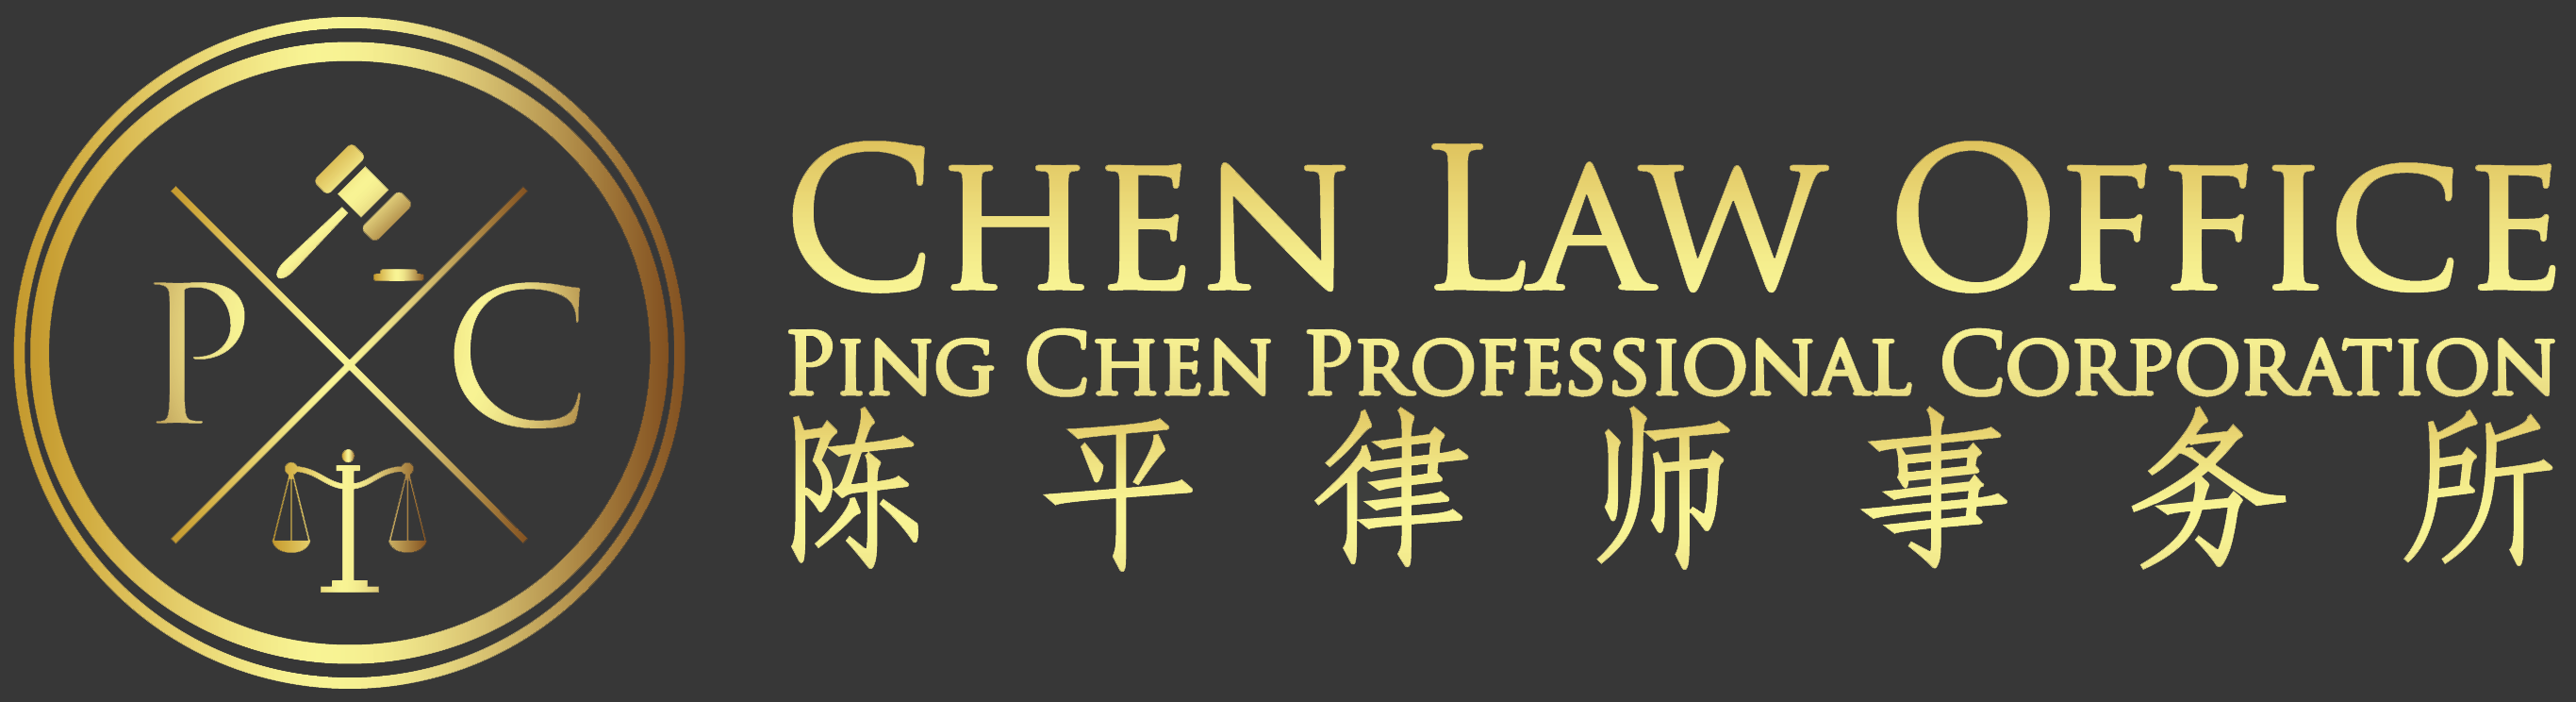 Chen Law Firm